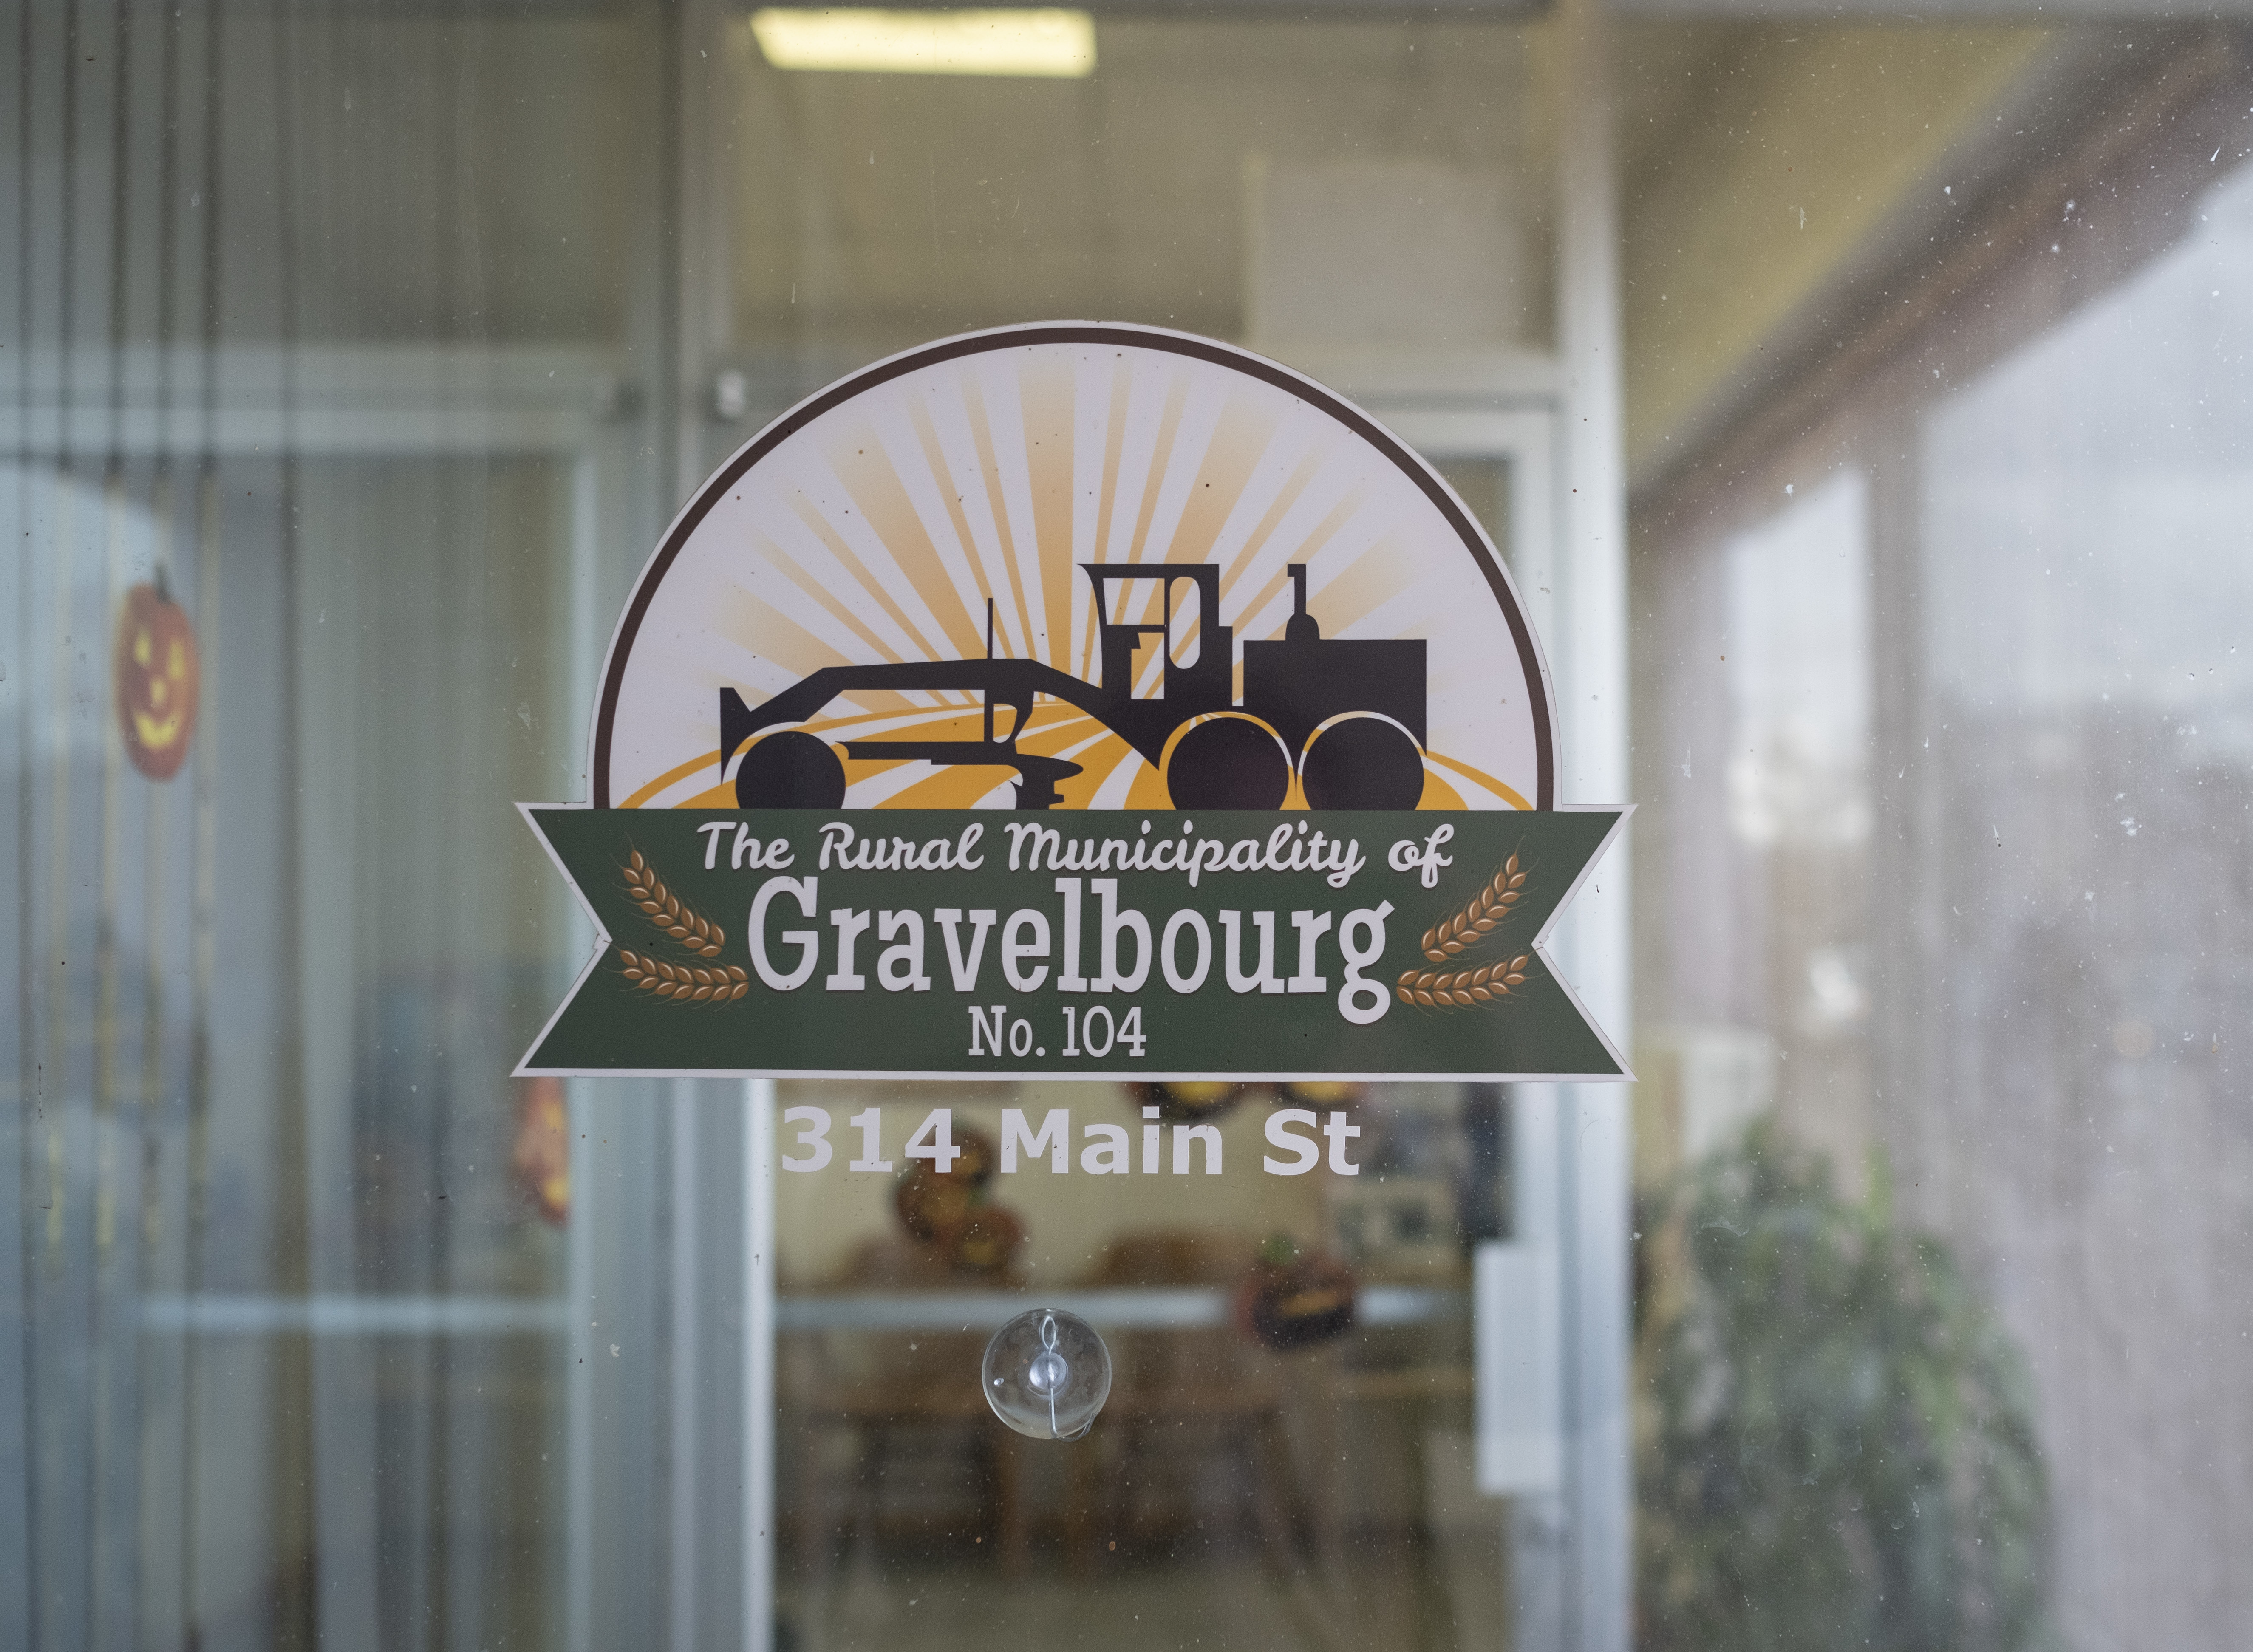 The current reeve of the RM of Gravelbourg, Guy Lorrain, says Cowan was not harassed. Photo: David Stobbe